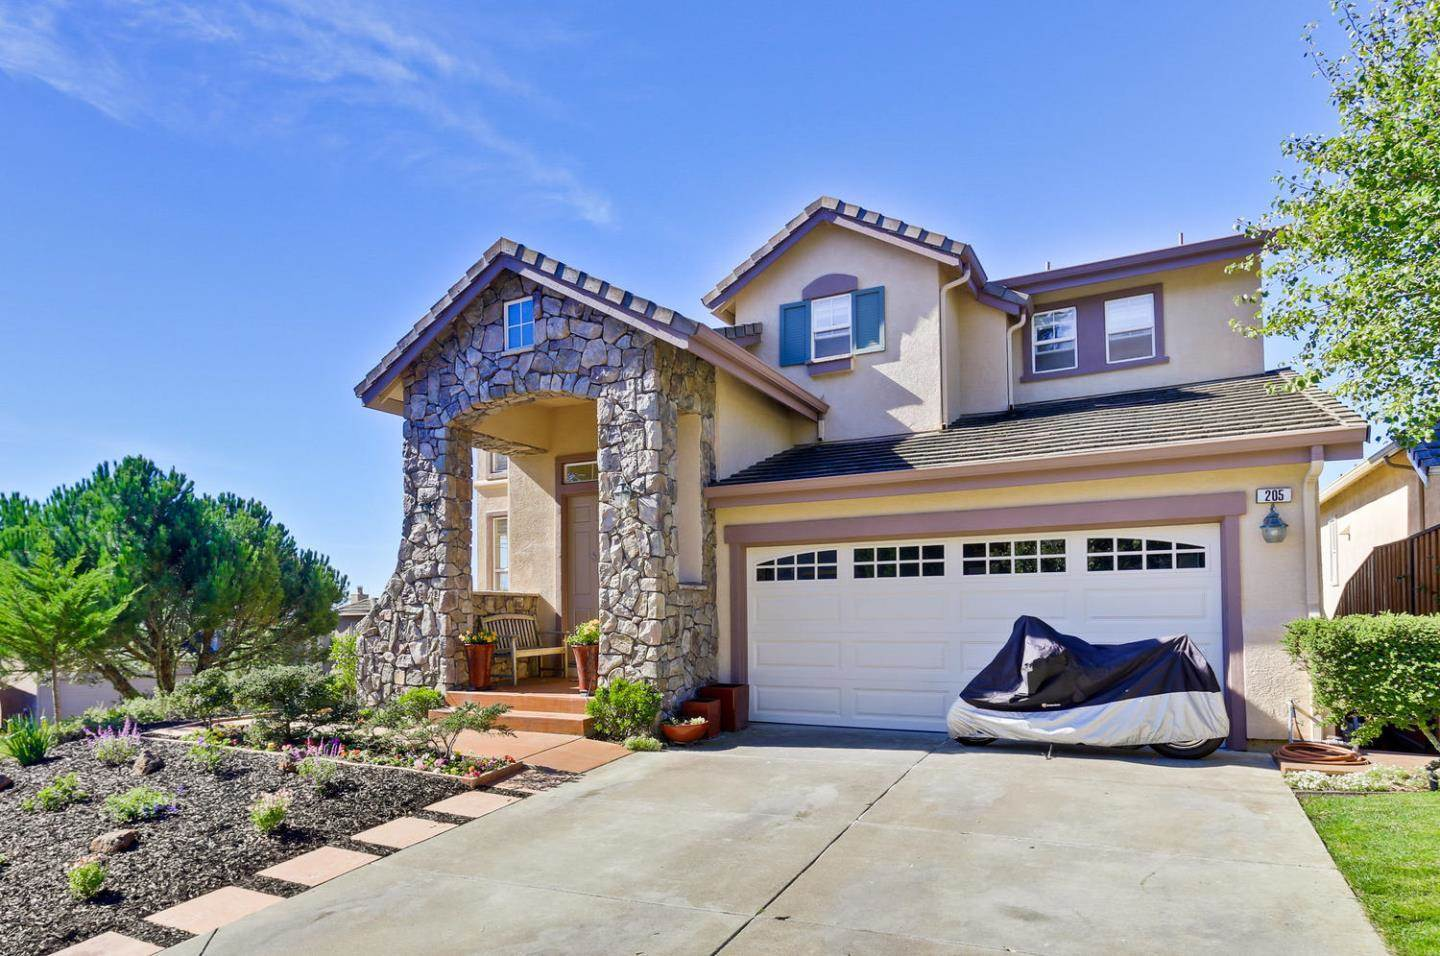 Photo of 205 Sunset CT  Pacifica  CA